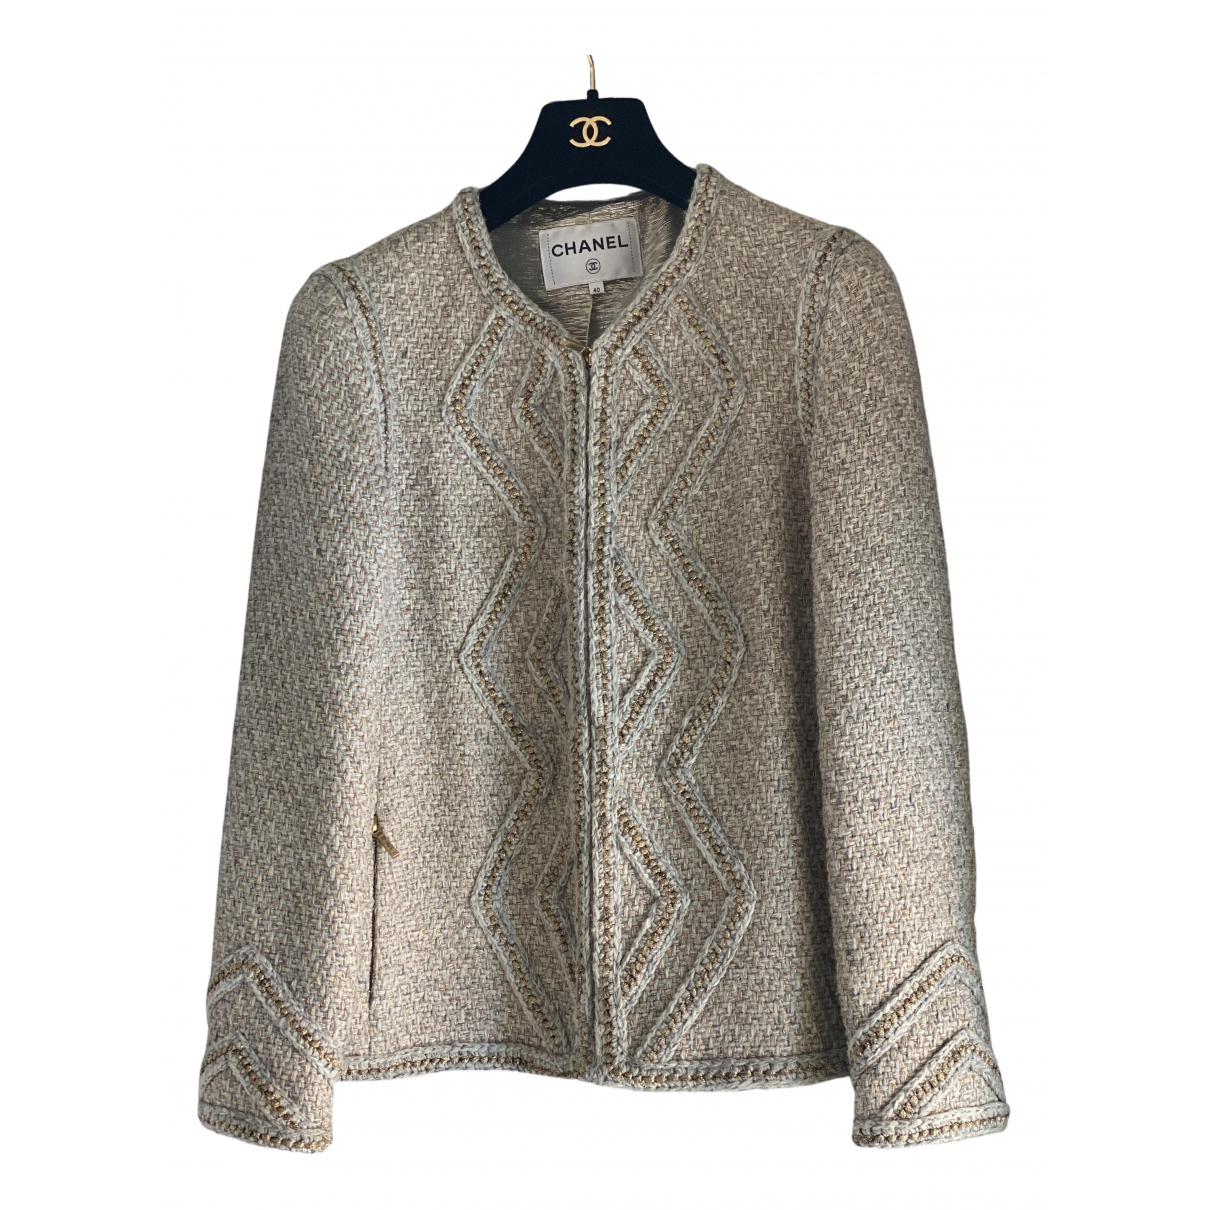 Chanel \N Jacke in  Beige Tweed